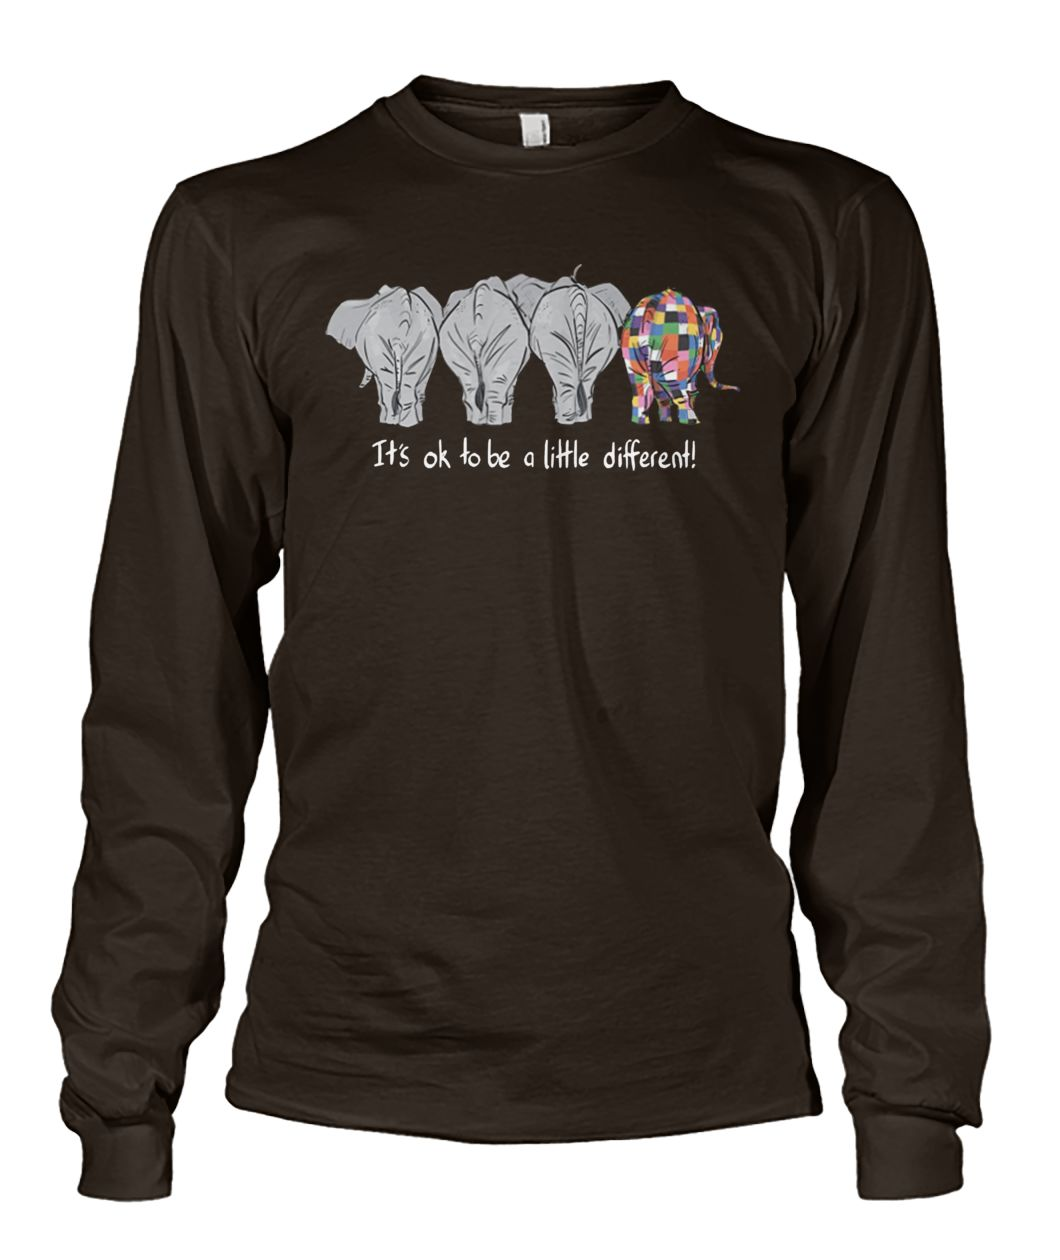 It's ok to be a little different autism awareness unisex long sleeve